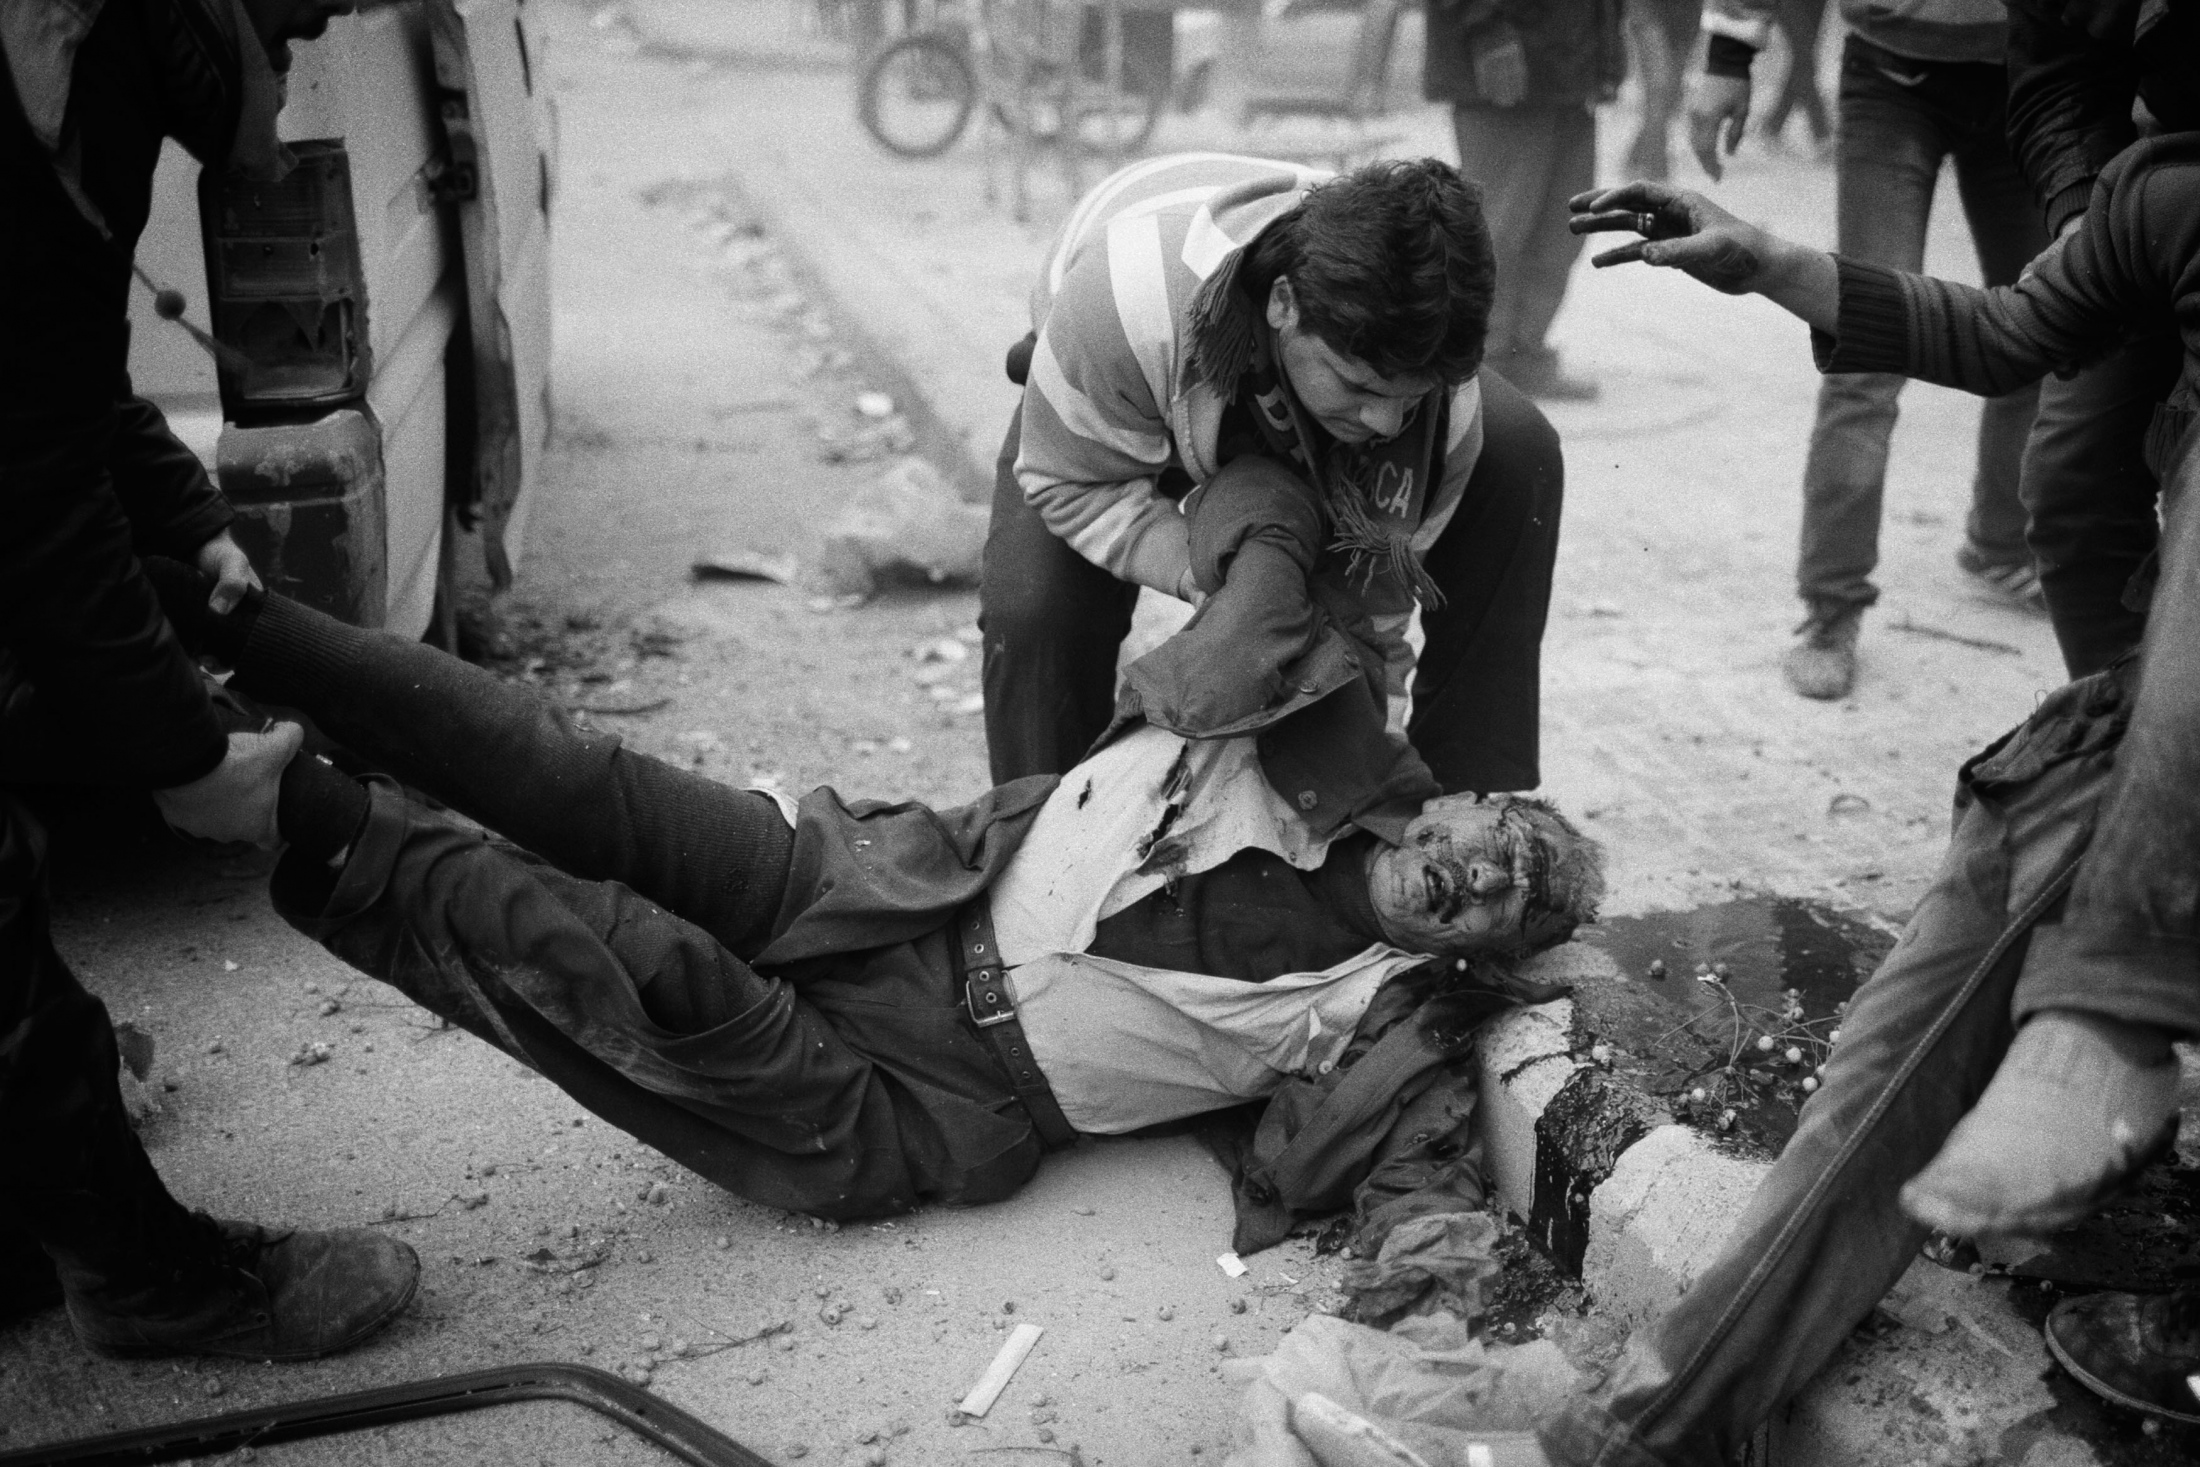 """A civilian lying on the floor after a mortar hits in the street of Izaah neighborhood of Aleppo, Syria, Wednesday, Jan. 13, 2013. The United Nations estimated that more than 400,000 people have been killed in Syria's 60-month-old uprising against authoritarian rule, a toll one-third higher than what anti-regime activists had counted. The U.N. human rights chief called the toll """"truly shocking."""" Copyright: Spanish Photojournalist Andoni Lubaki"""